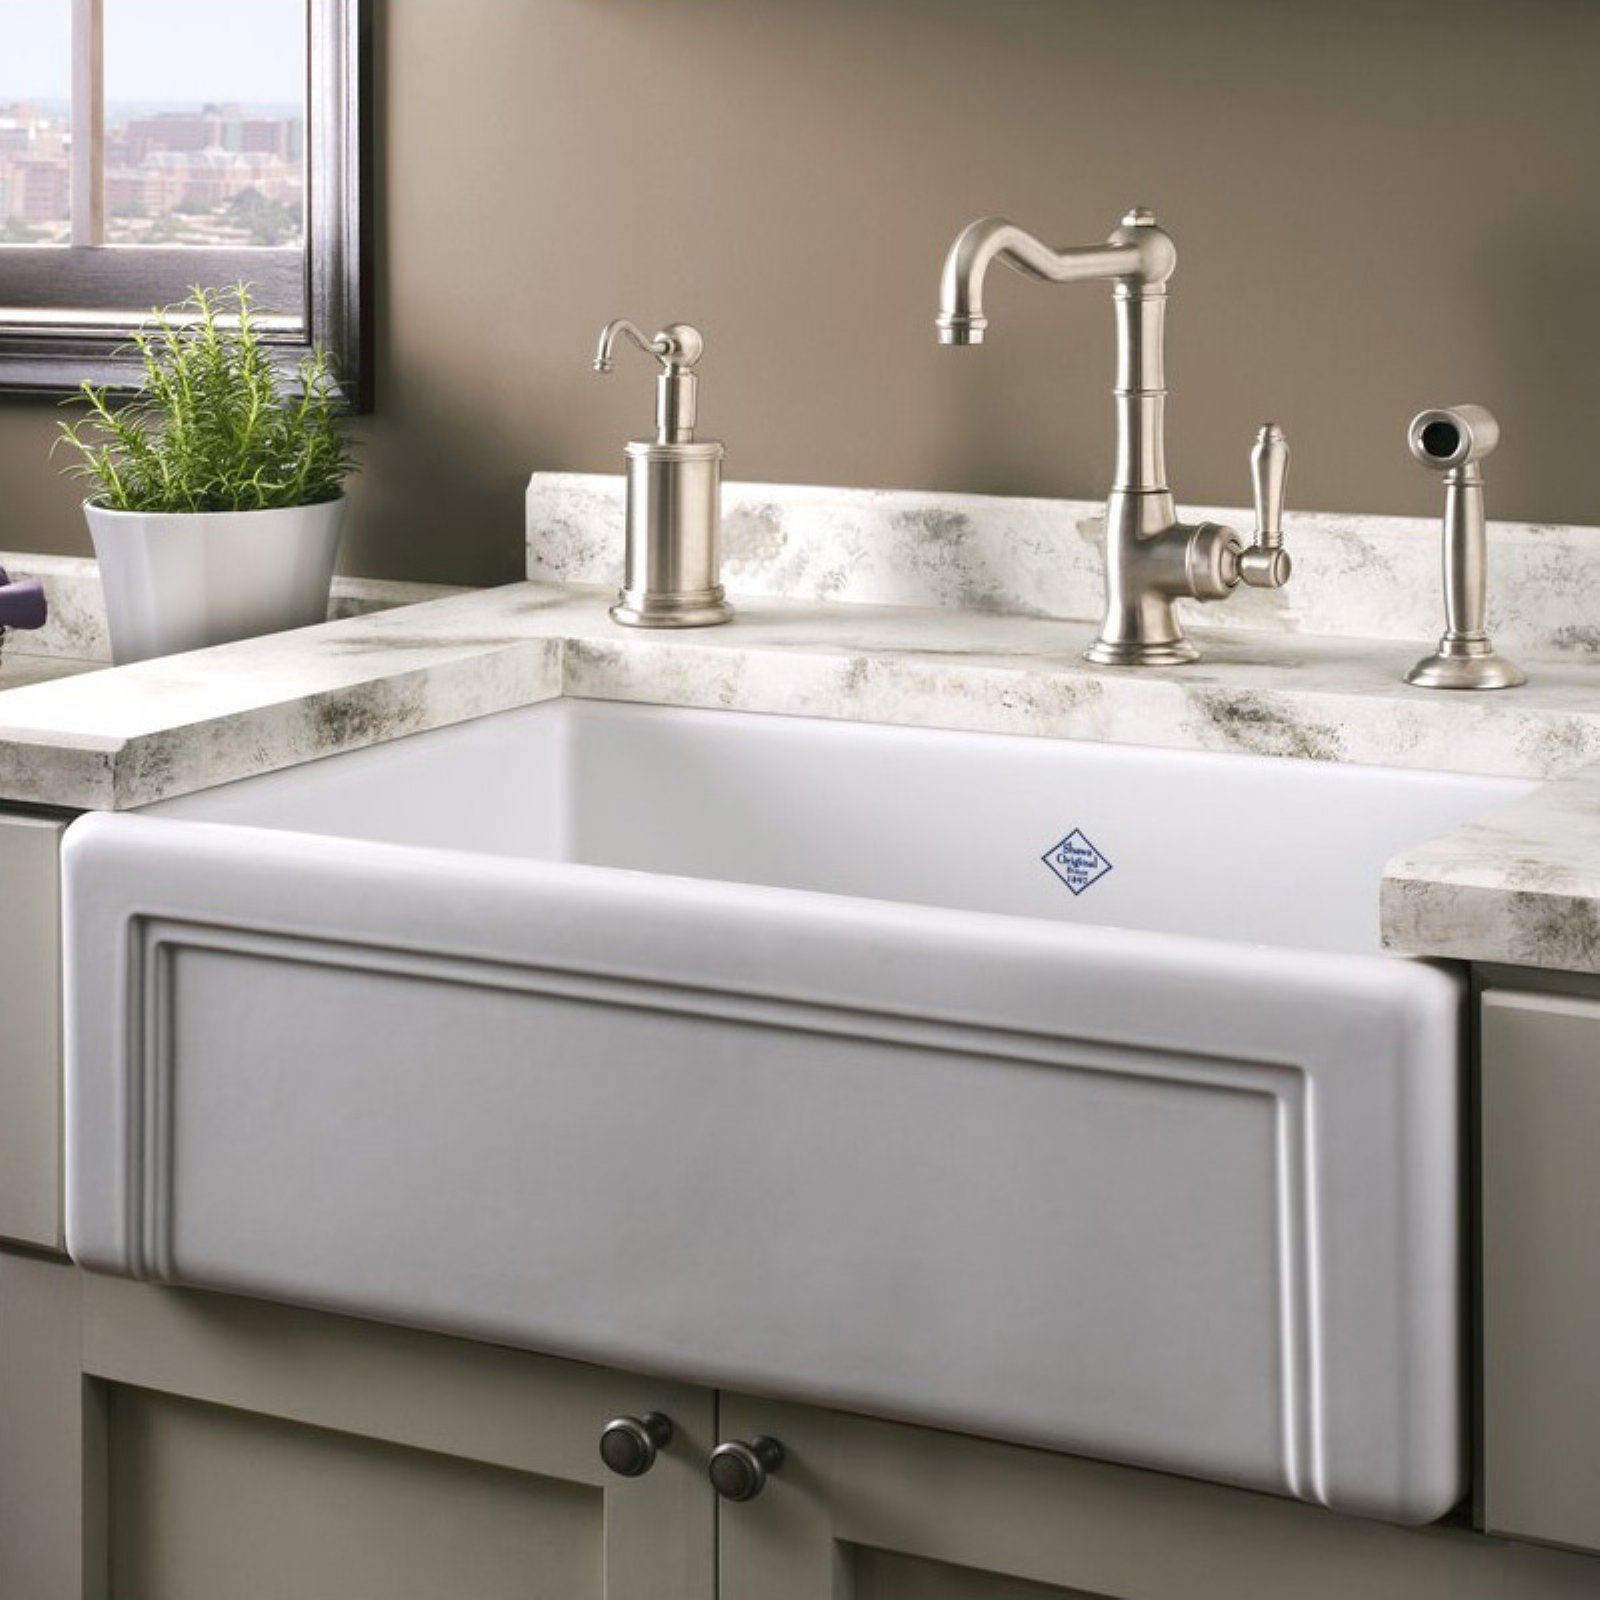 Rohl rc3017 shaws single basin farmhouse sink walmart com